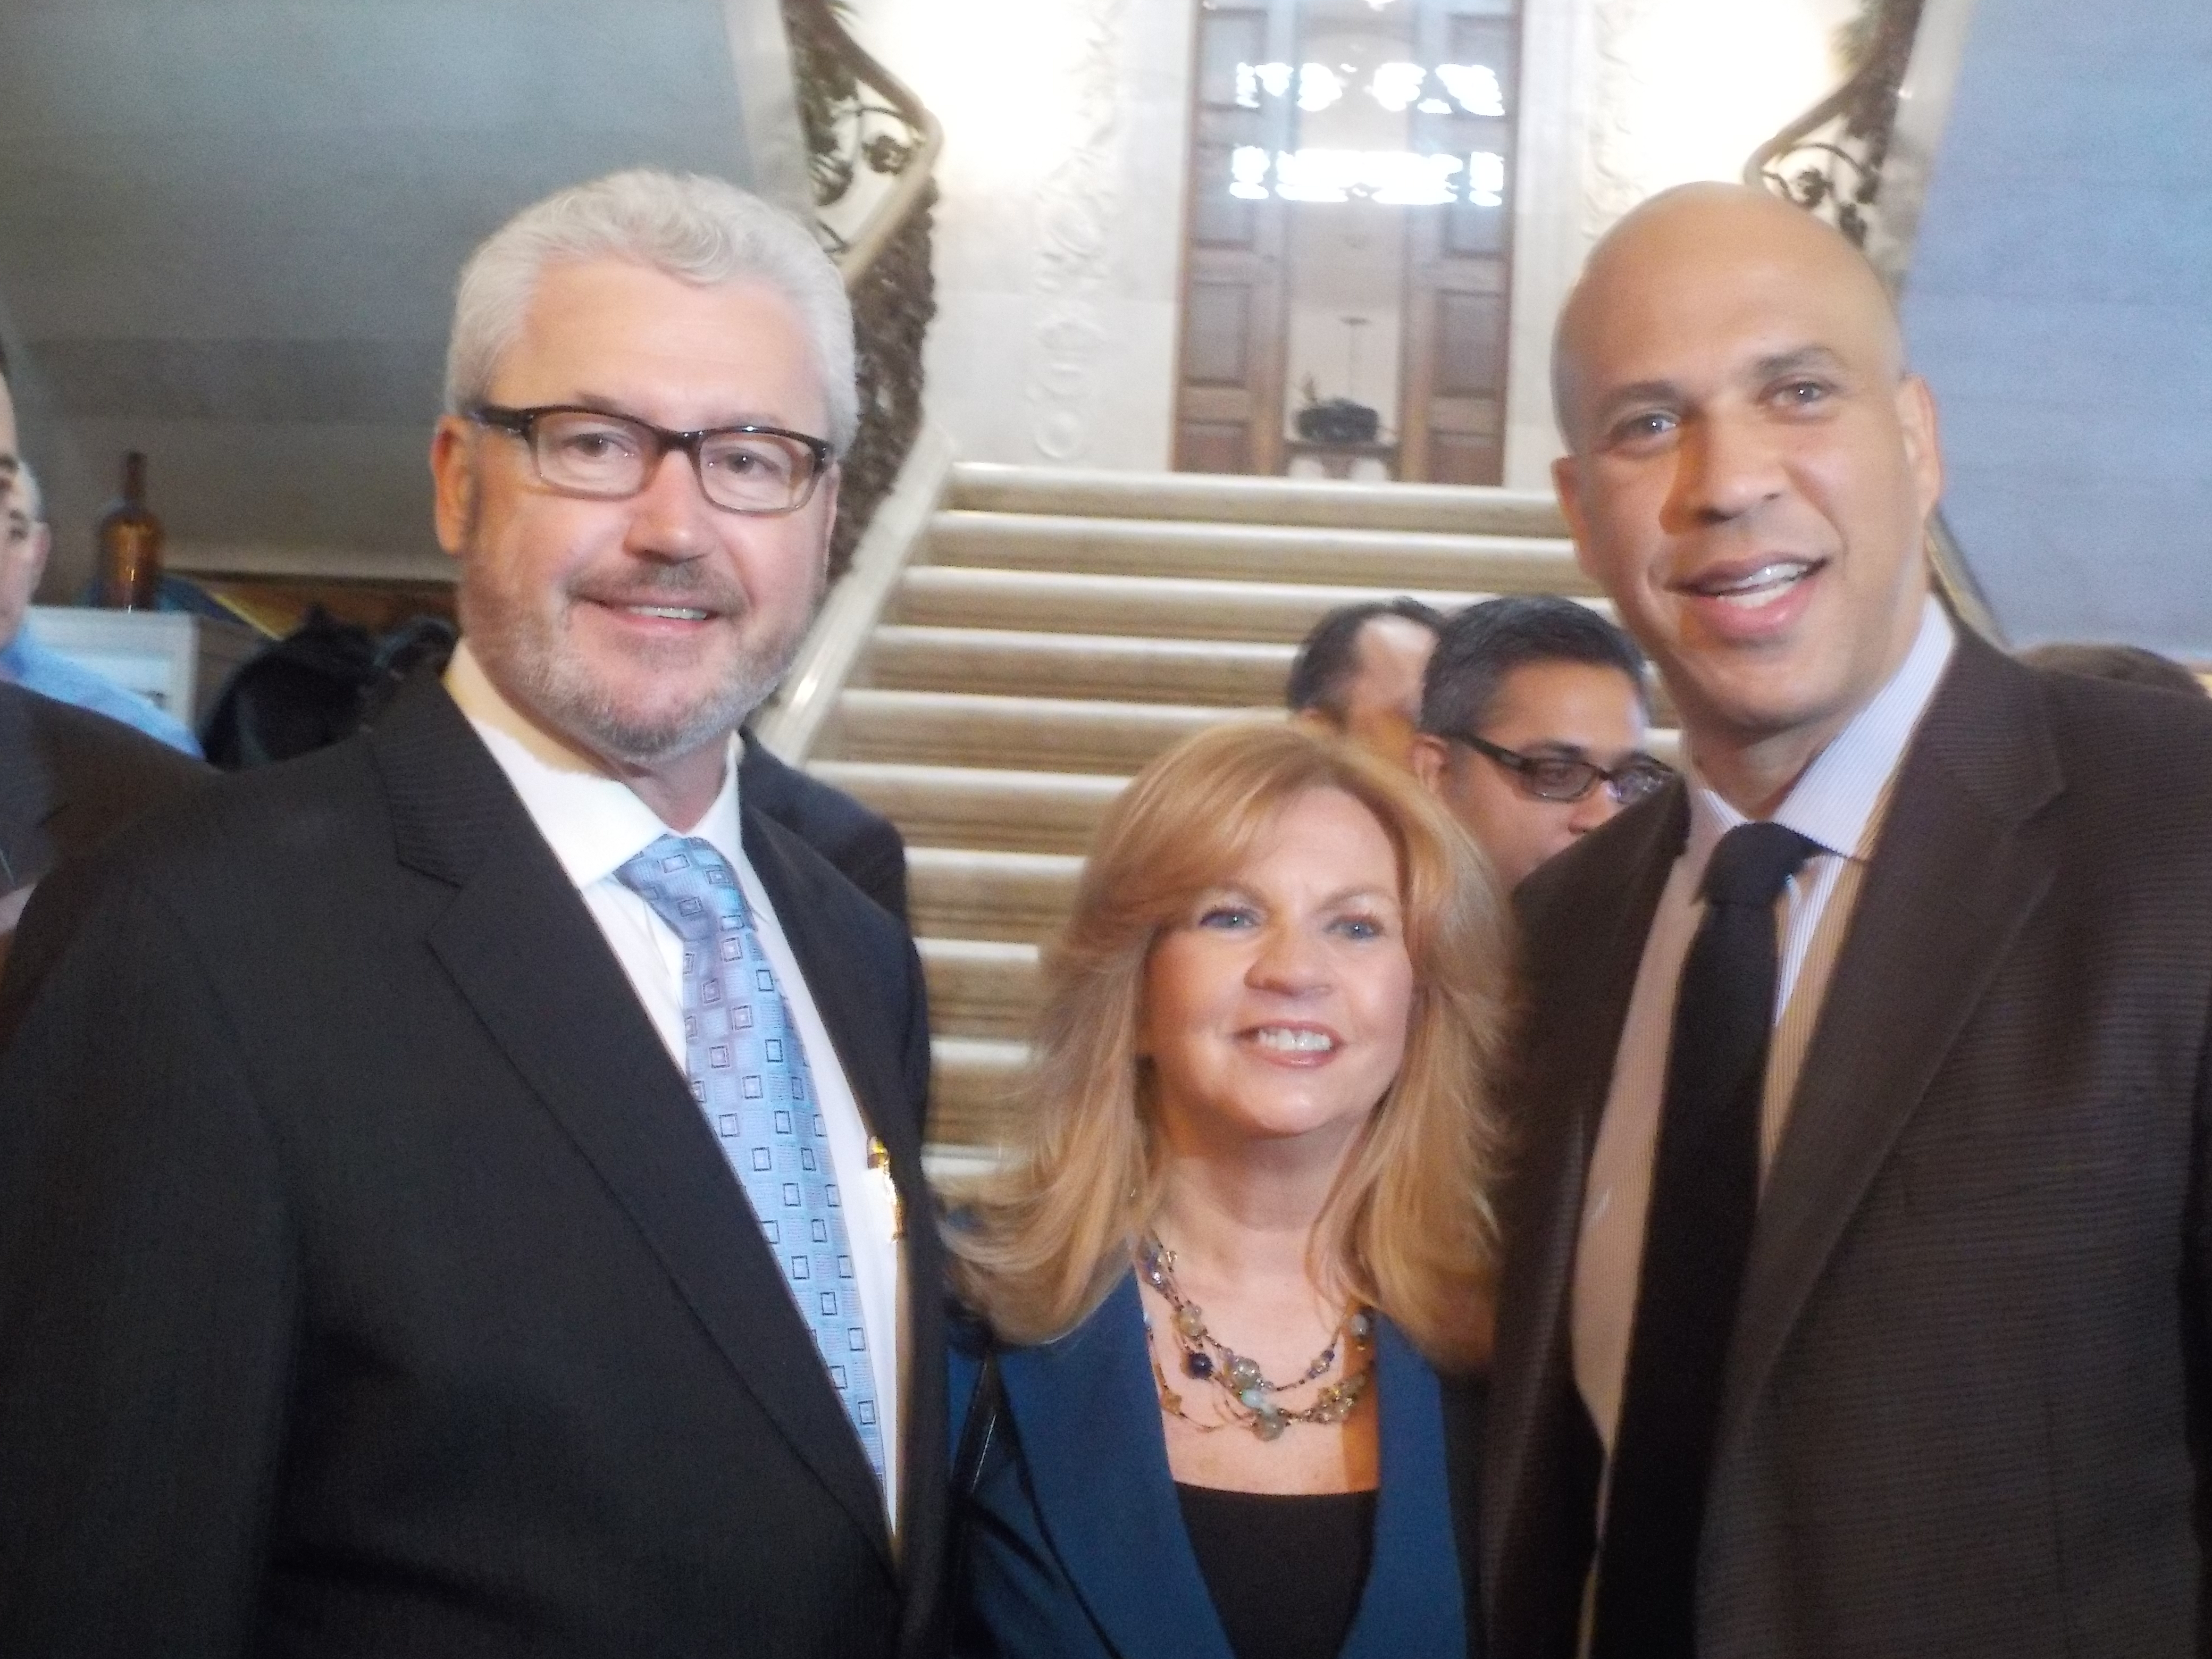 Morristown Mayor Tim Dougherty (left) announced his candidacy on Monday. Pictured with his wife, Mary, and U.S. Senator Cory Booker.